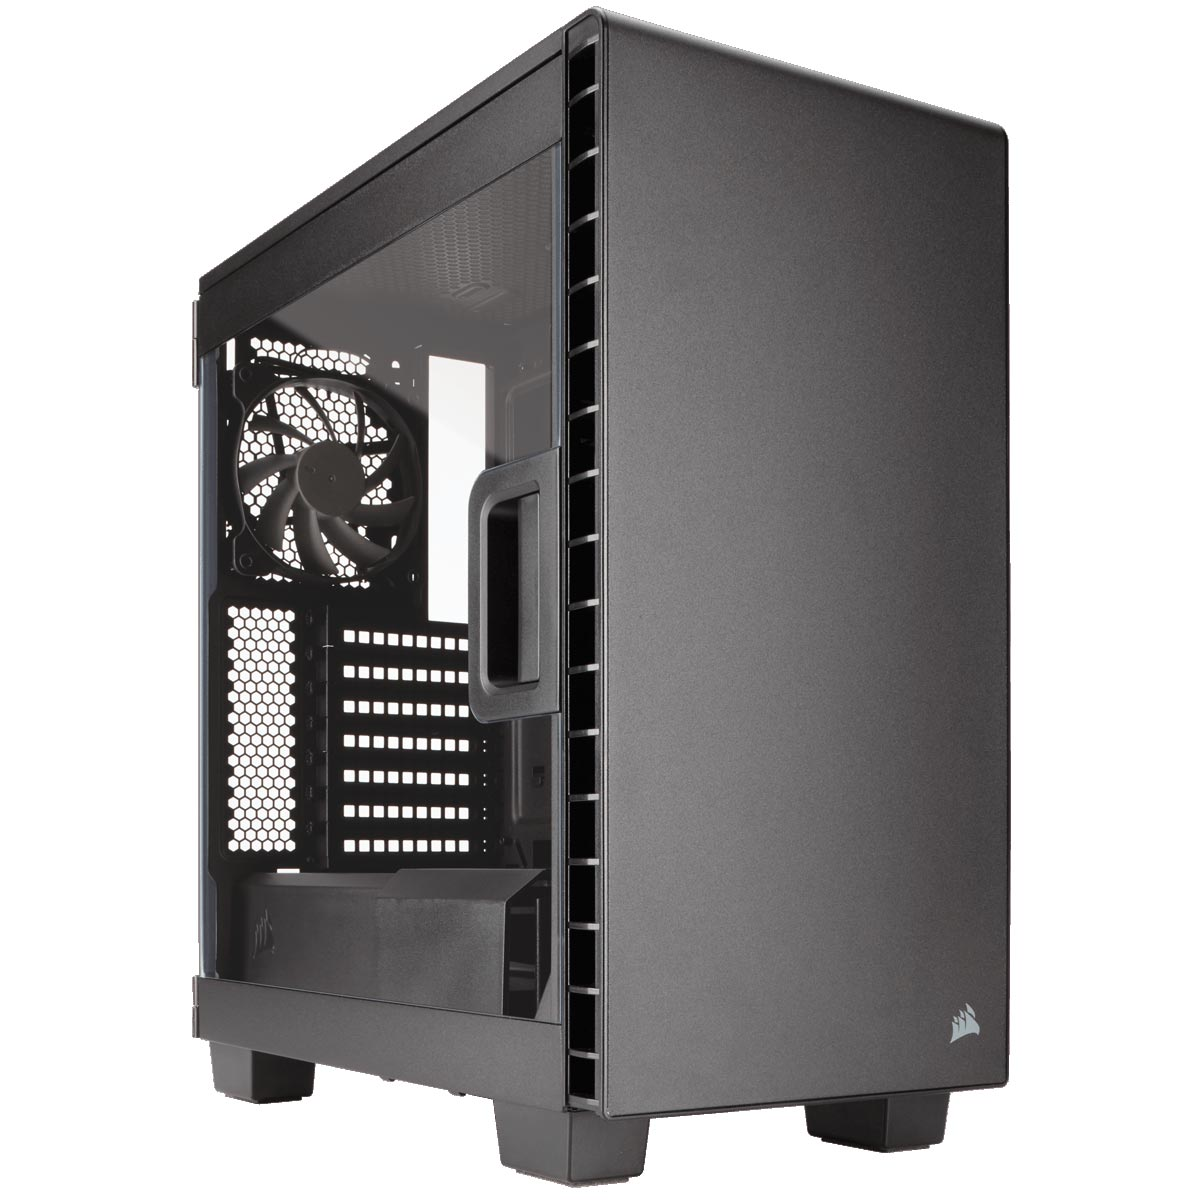 Corsair Carbide Clear 400C CC-9011081-WW -MT/Ss Alim/ATX Noir - Boîtier PC - 0